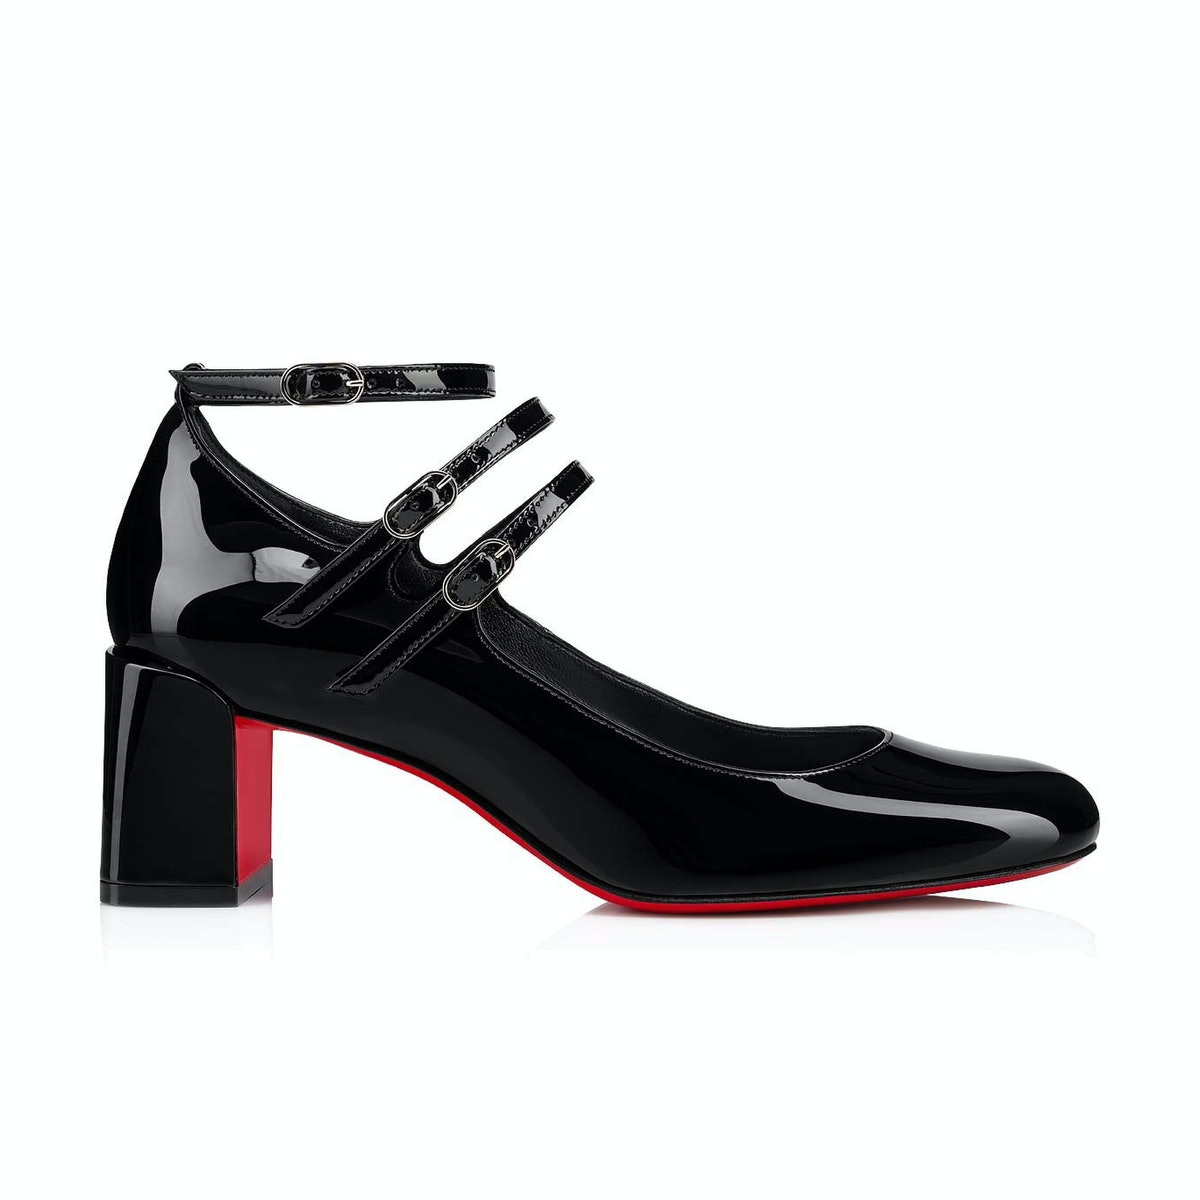 Christian Louboutin Vernica Patent Leather Mary Jane Pumps